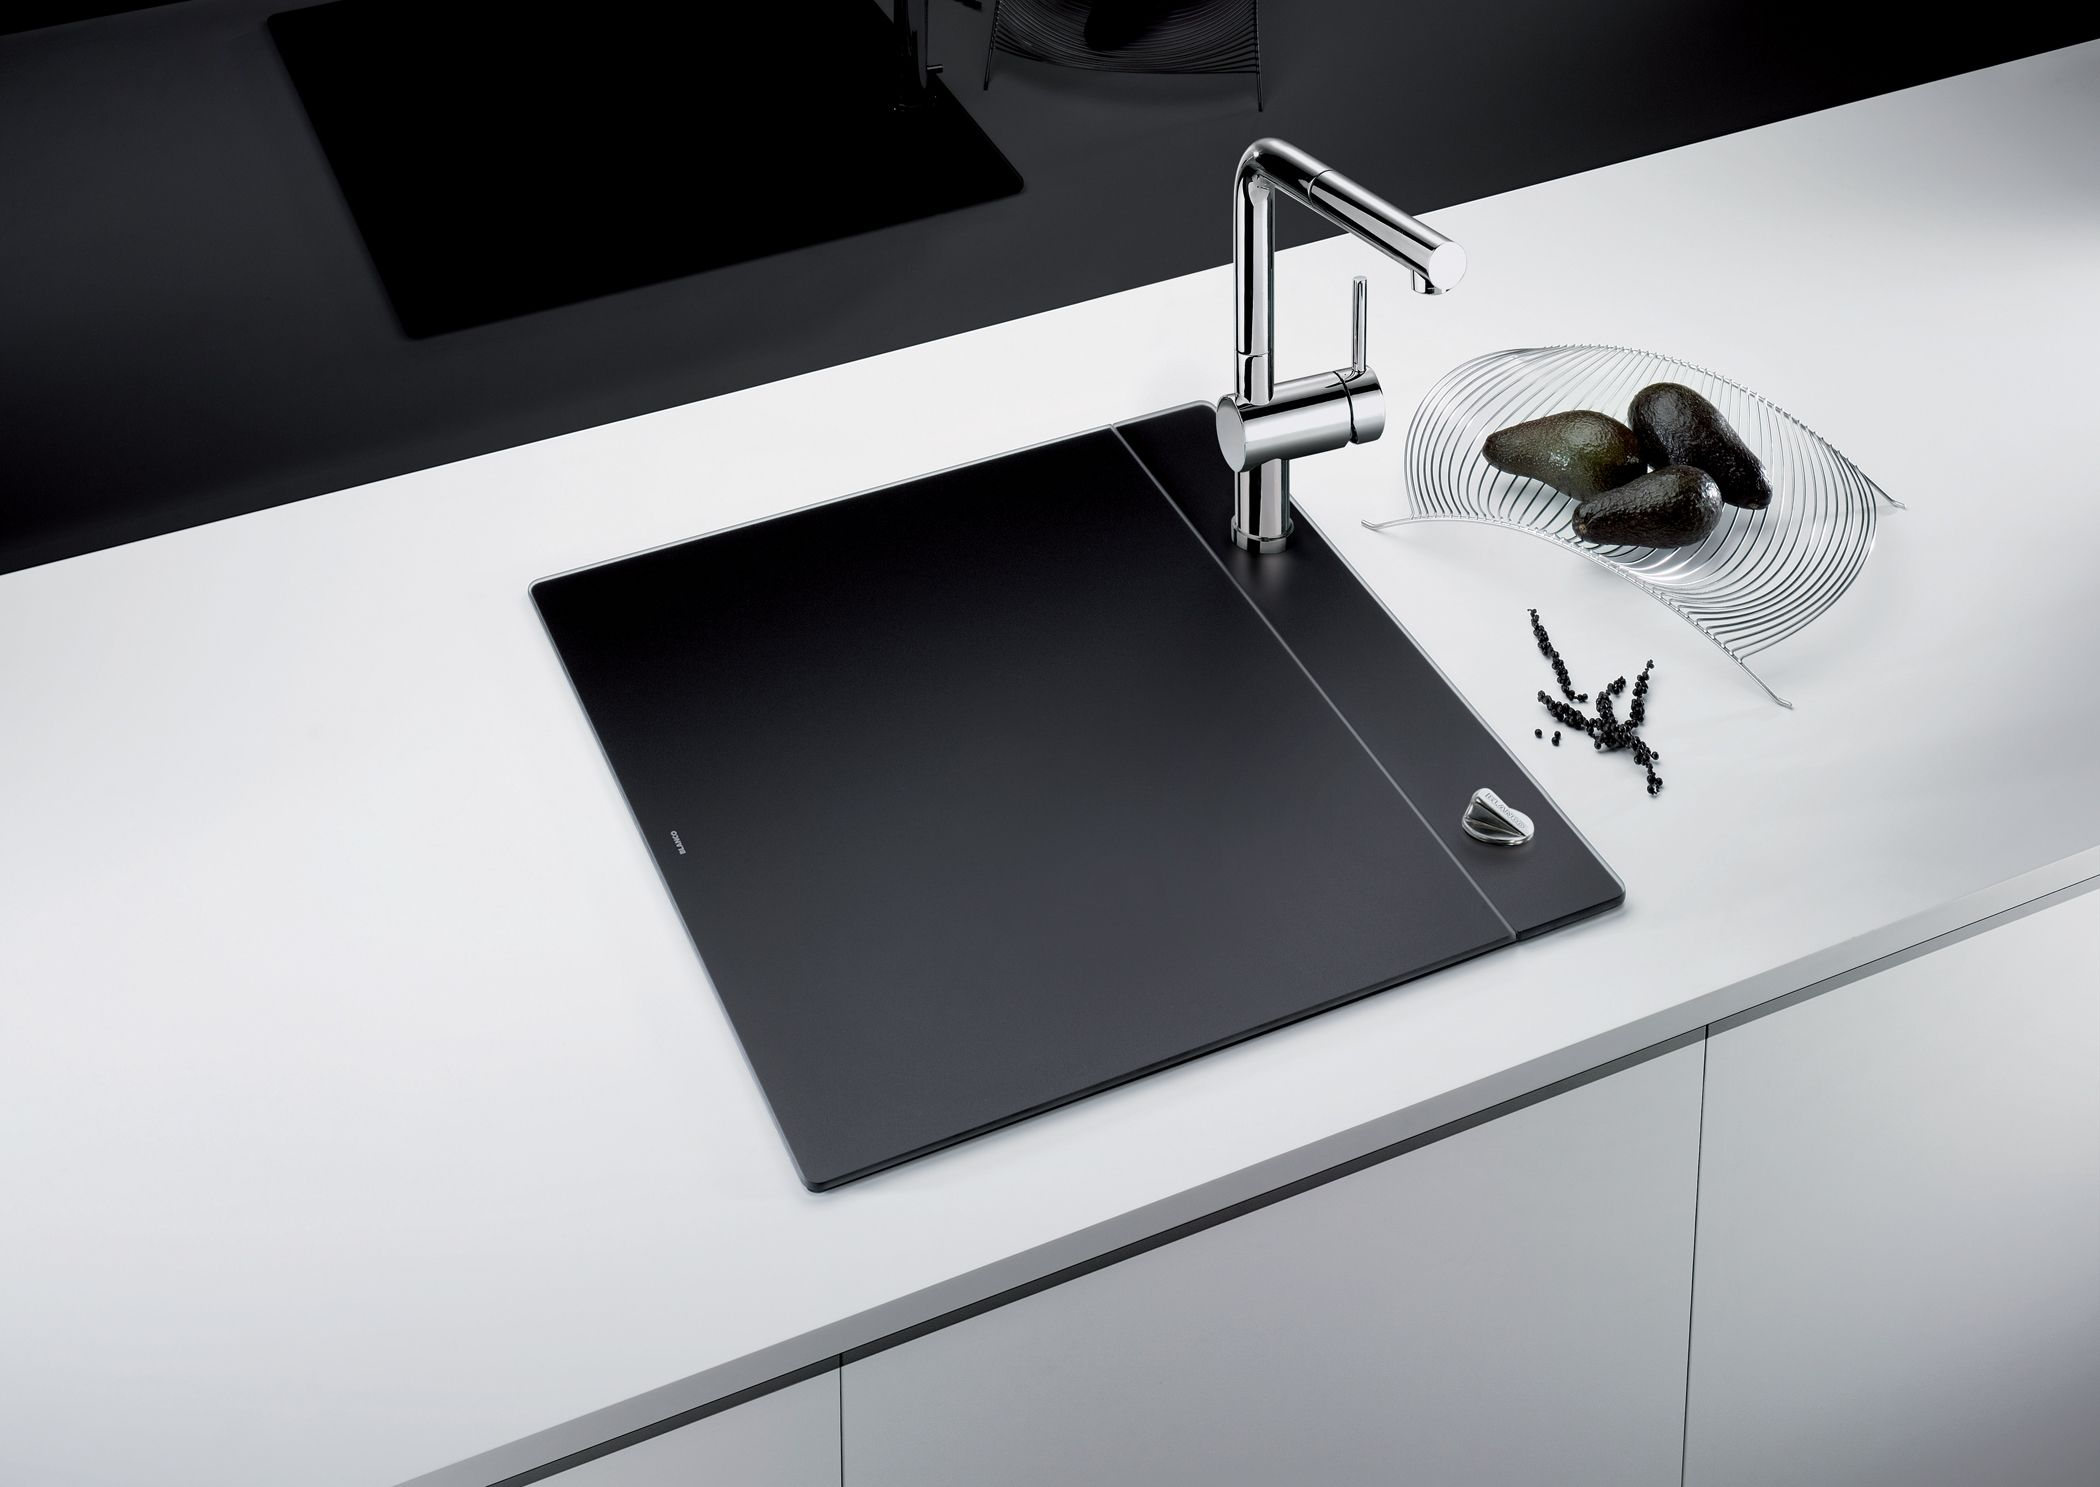 kitchen sinks blanco kitchen sinks The award winning BLANCO CRYSTALLINE in black sink vanishes when not in use to give small kitchens more counterspace